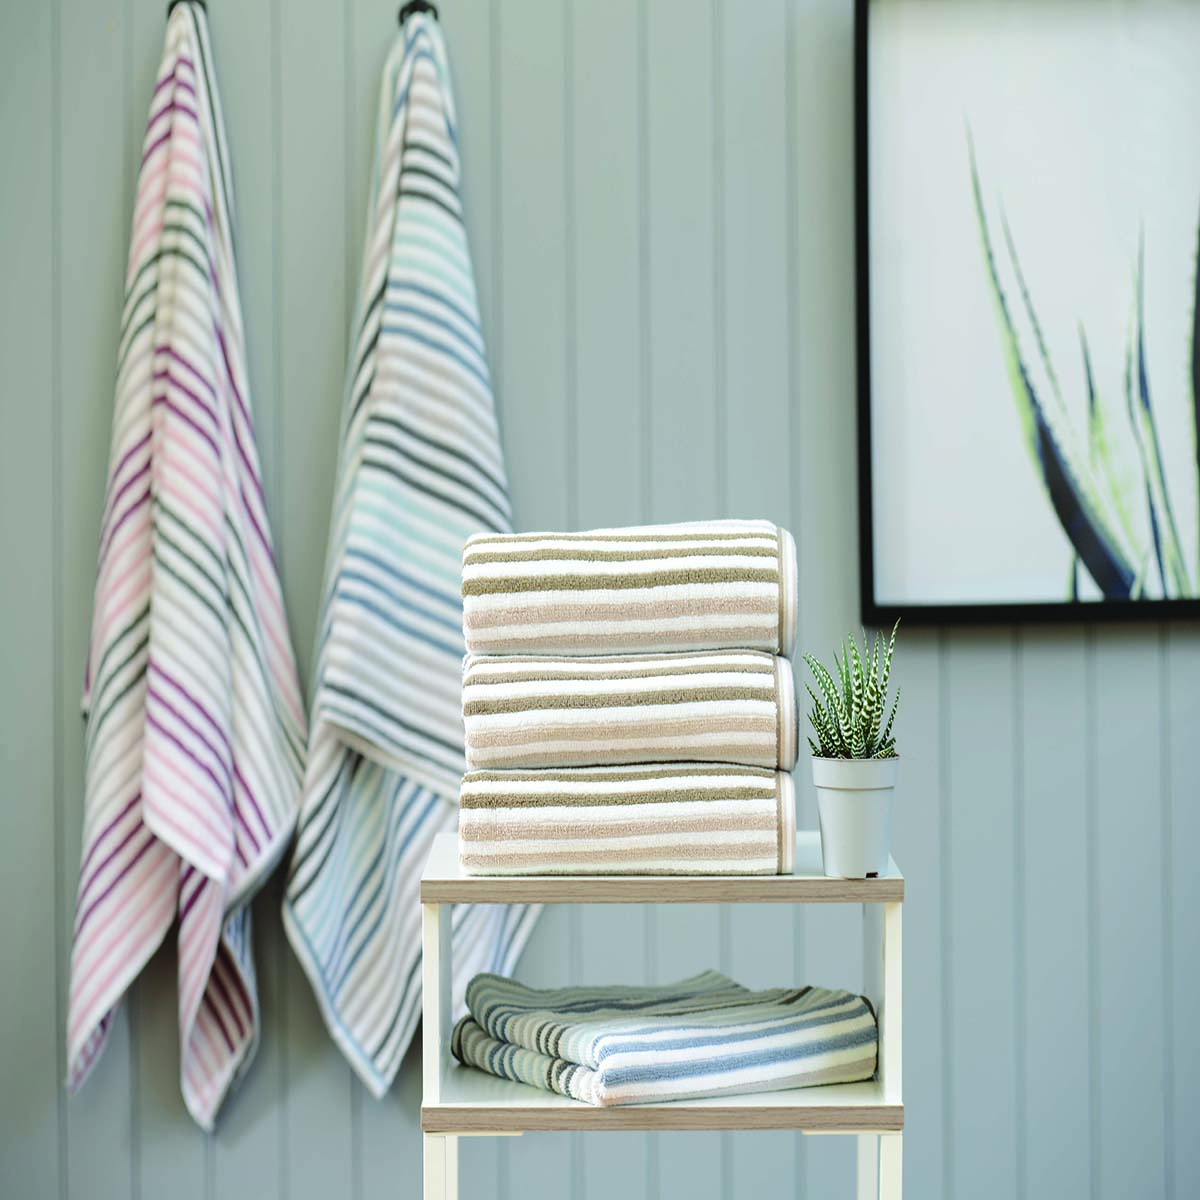 Luxury Bedding, Towels, Linens and Home Products | Musbury